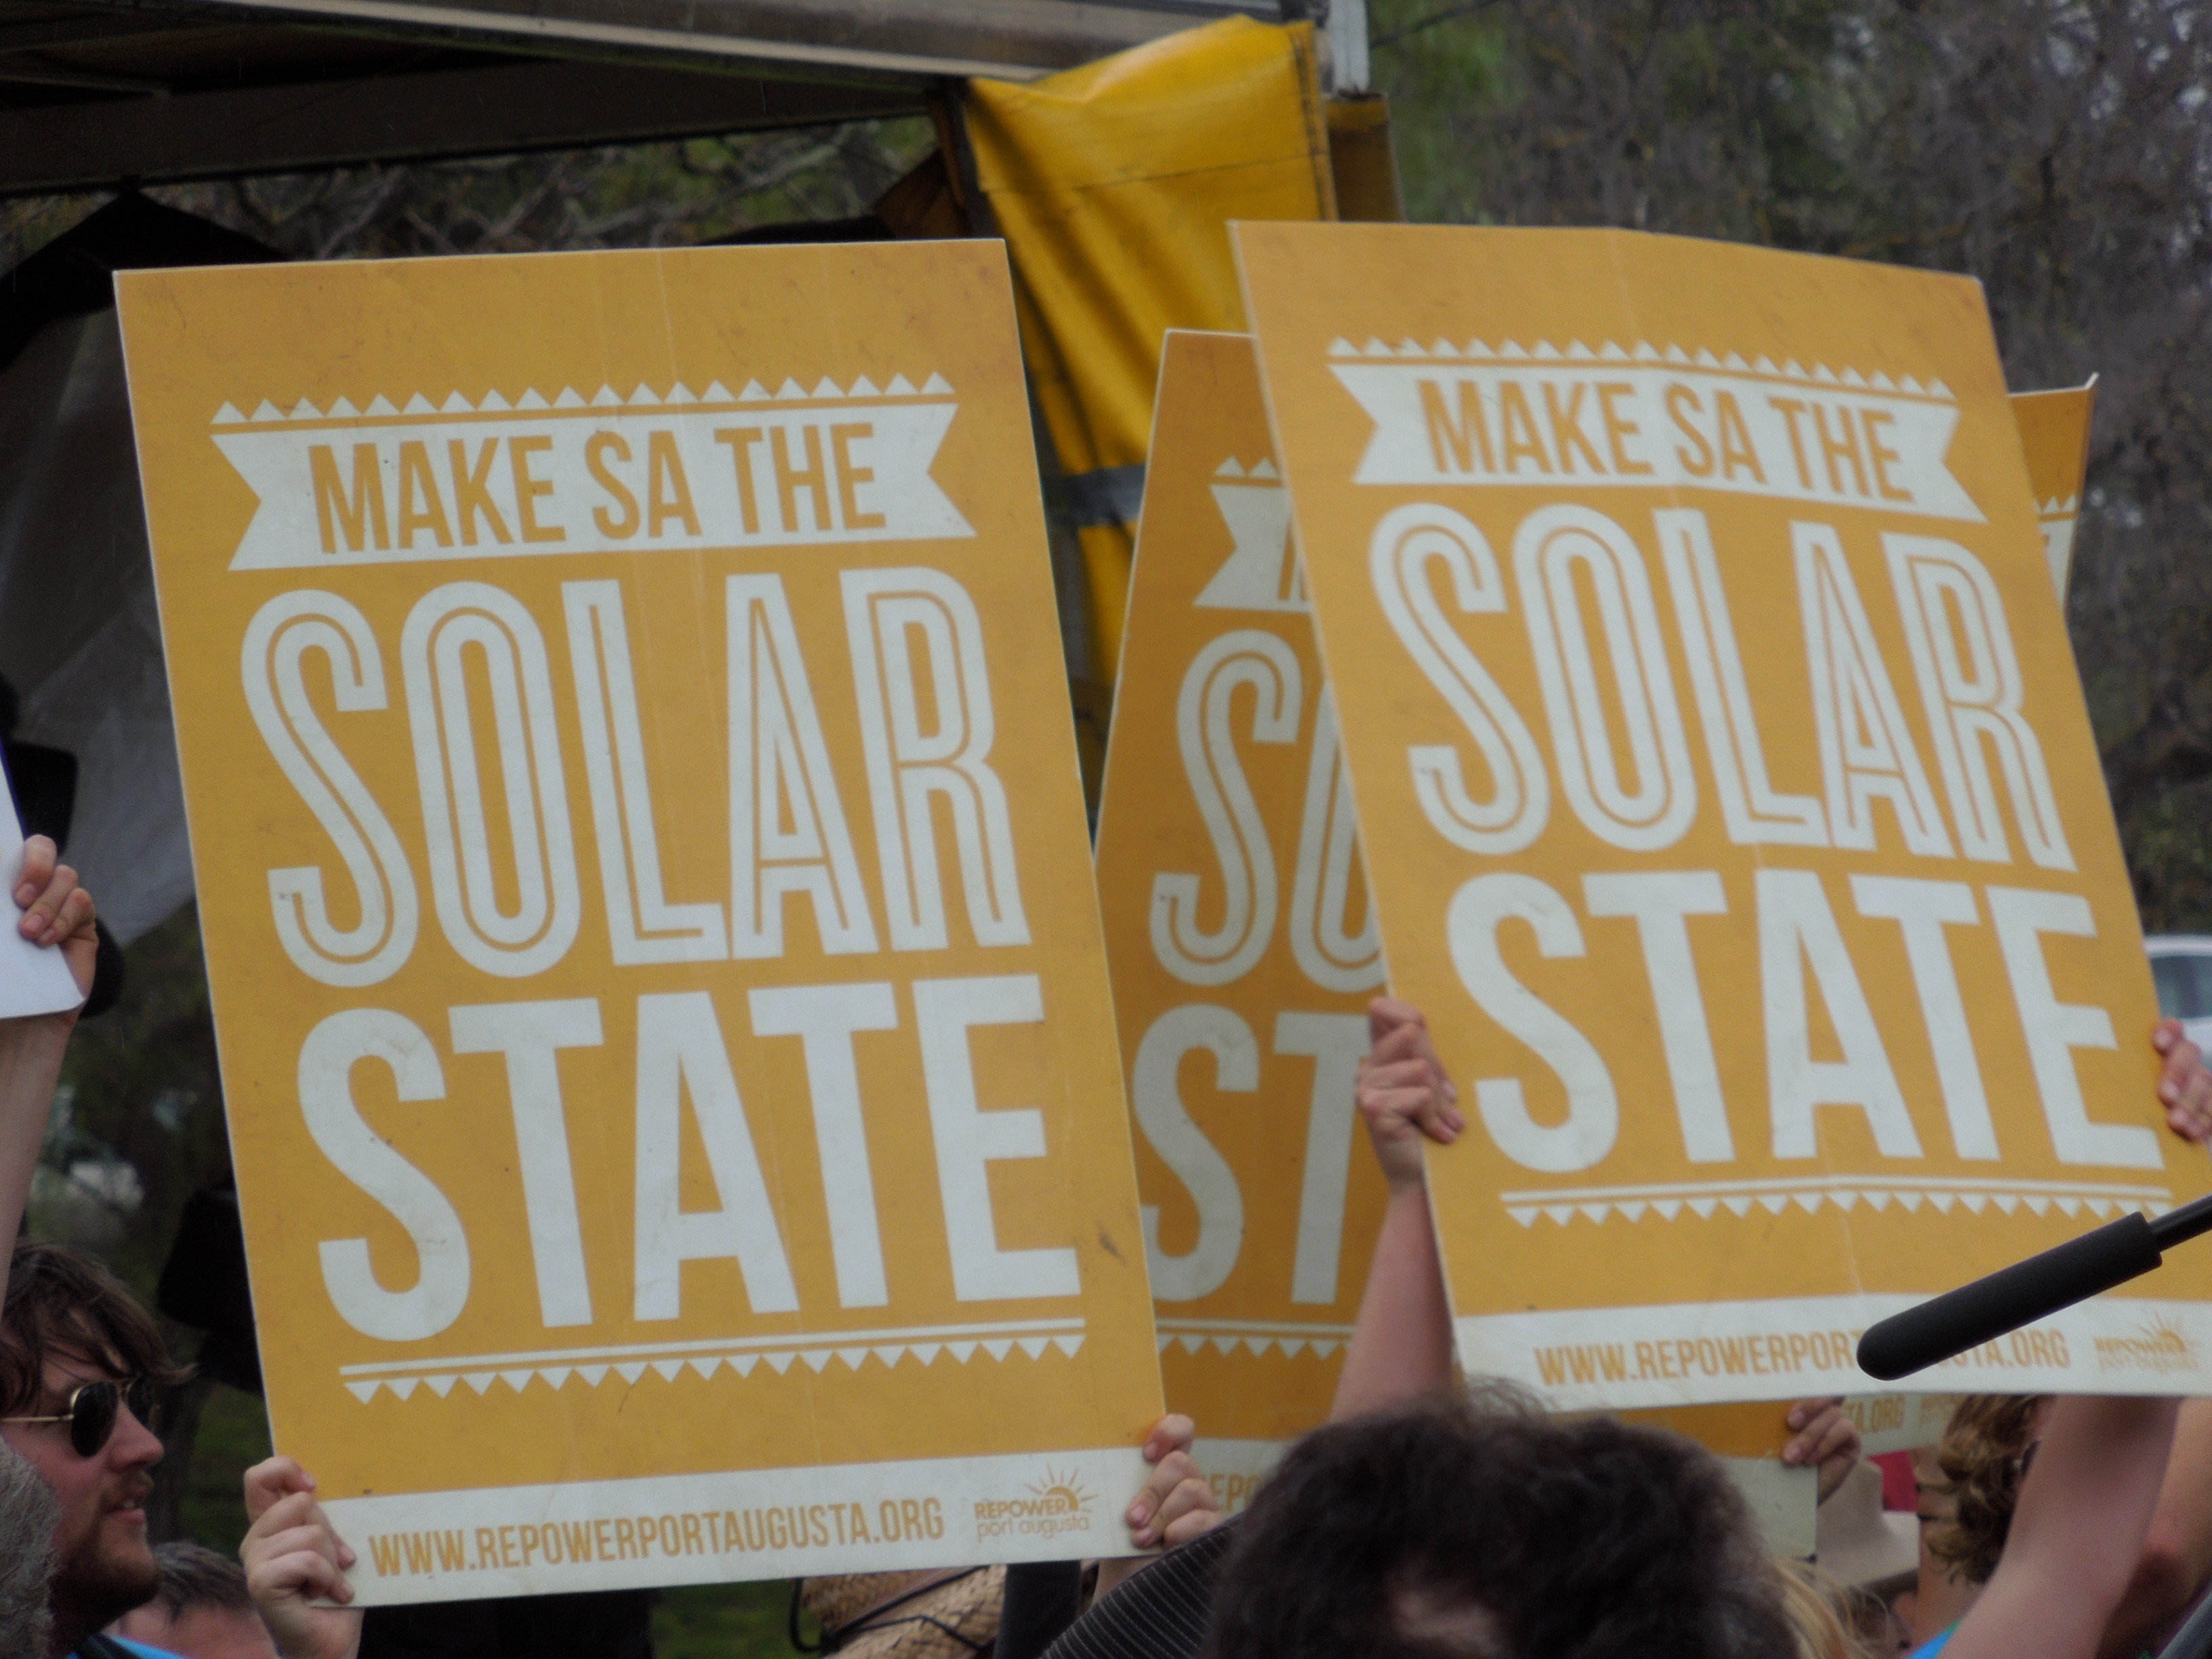 Make South Australia the Solar State